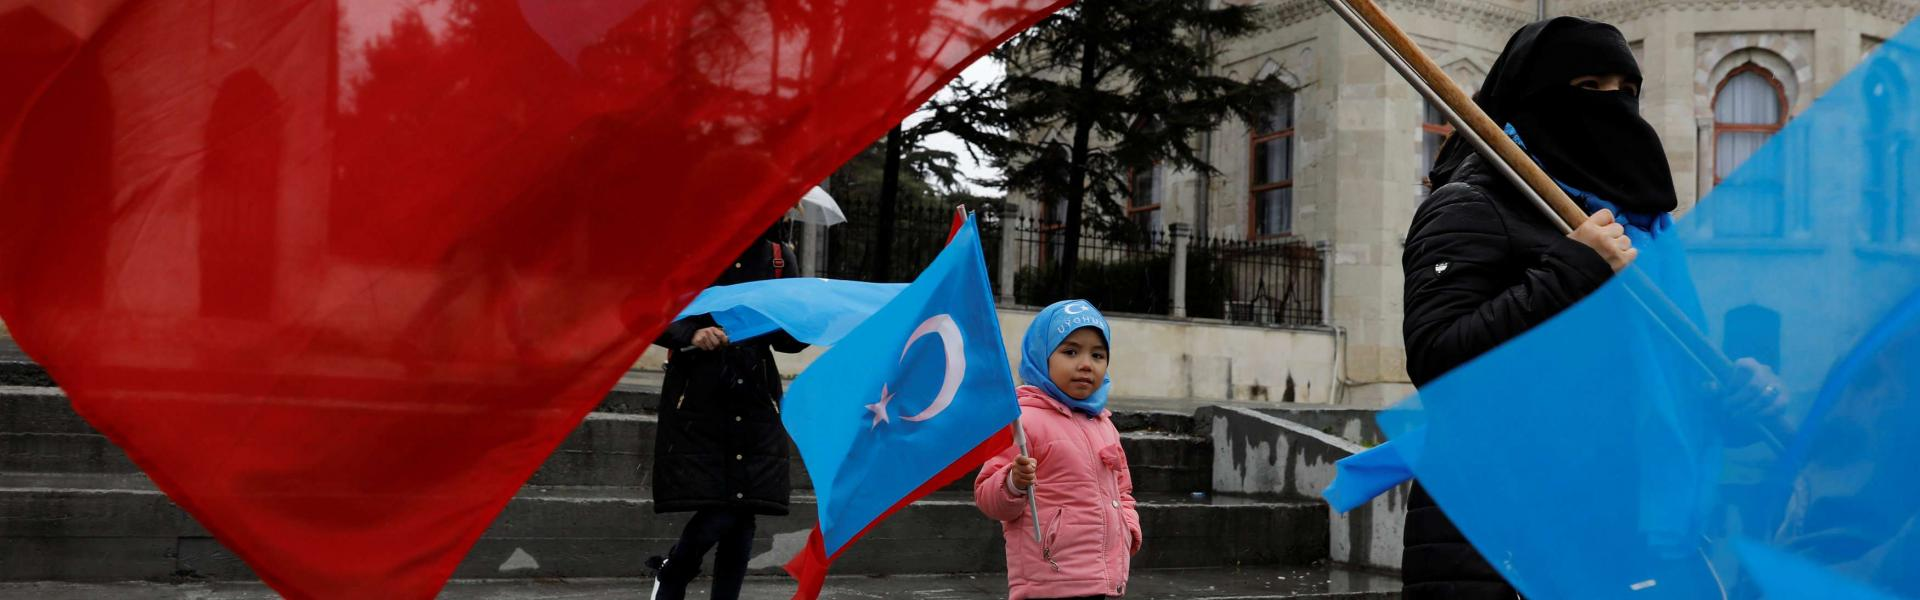 Ethnic Uighur demonstrators hold East Turkestan and Turkish flags during a demonstration against China in Istanbul, Turkey, February 23, 2019. REUTERS/Umit Bektas